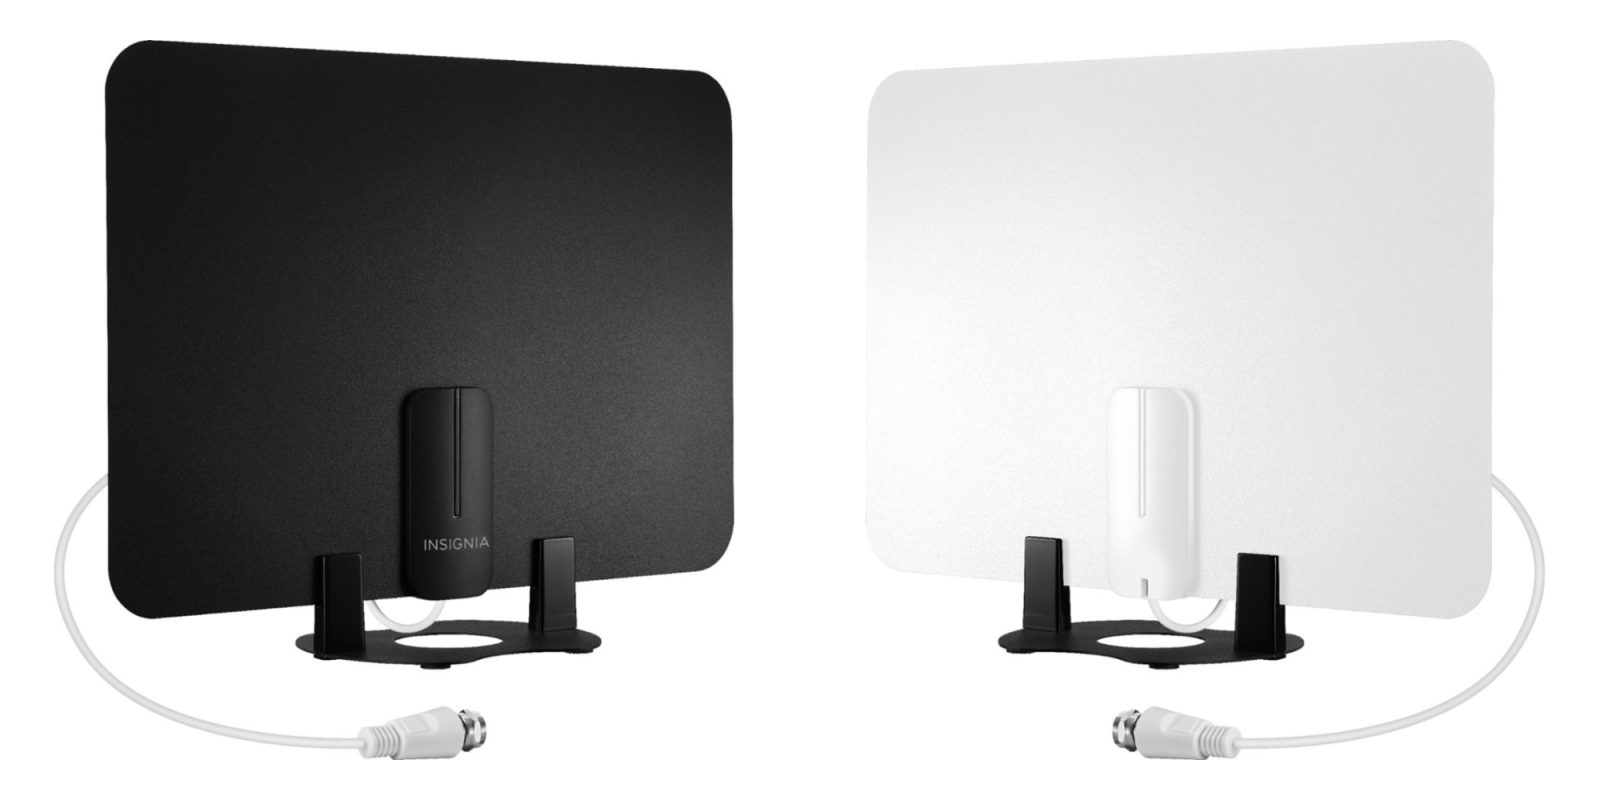 Insignia's Amplified 50-mile OTA Antenna can be yours at 20% off, now just $40